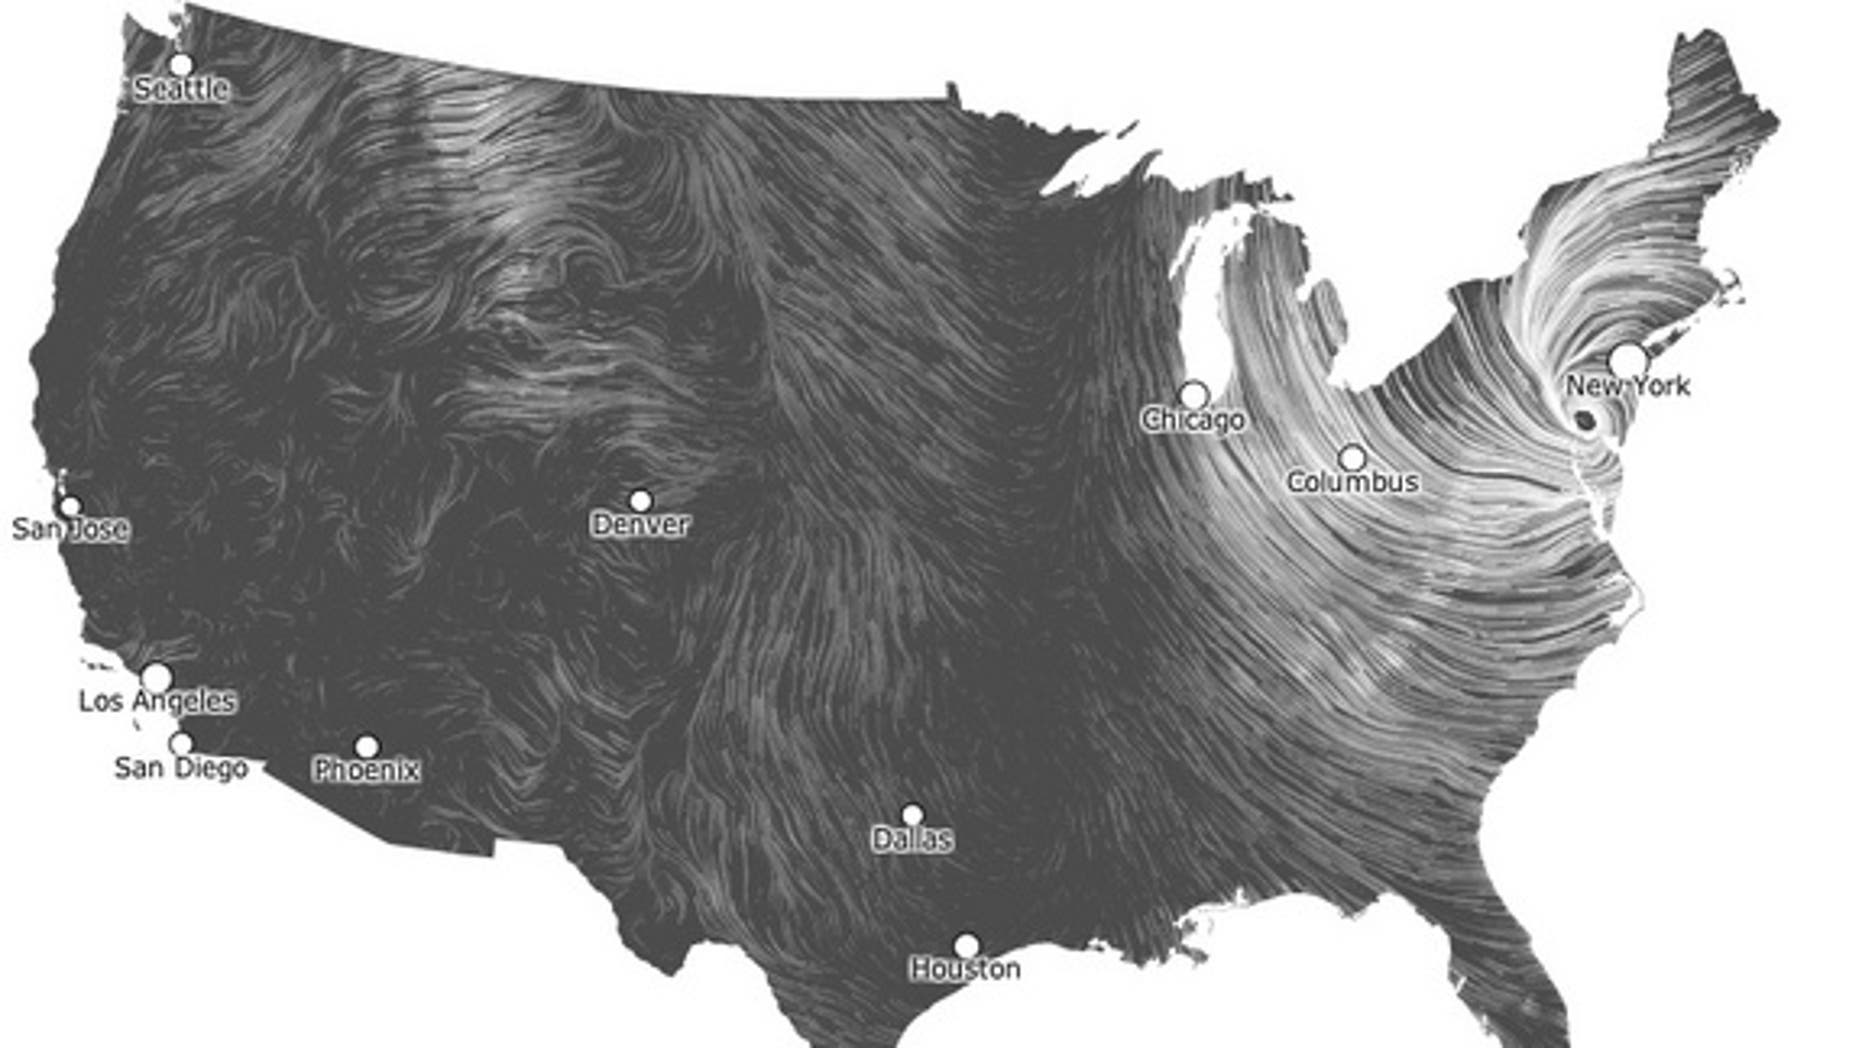 This wind maps shows the spiral of post-tropical storm Sandy's winds at 9:59 p.m. EDT on Tuesday, Oct. 29.